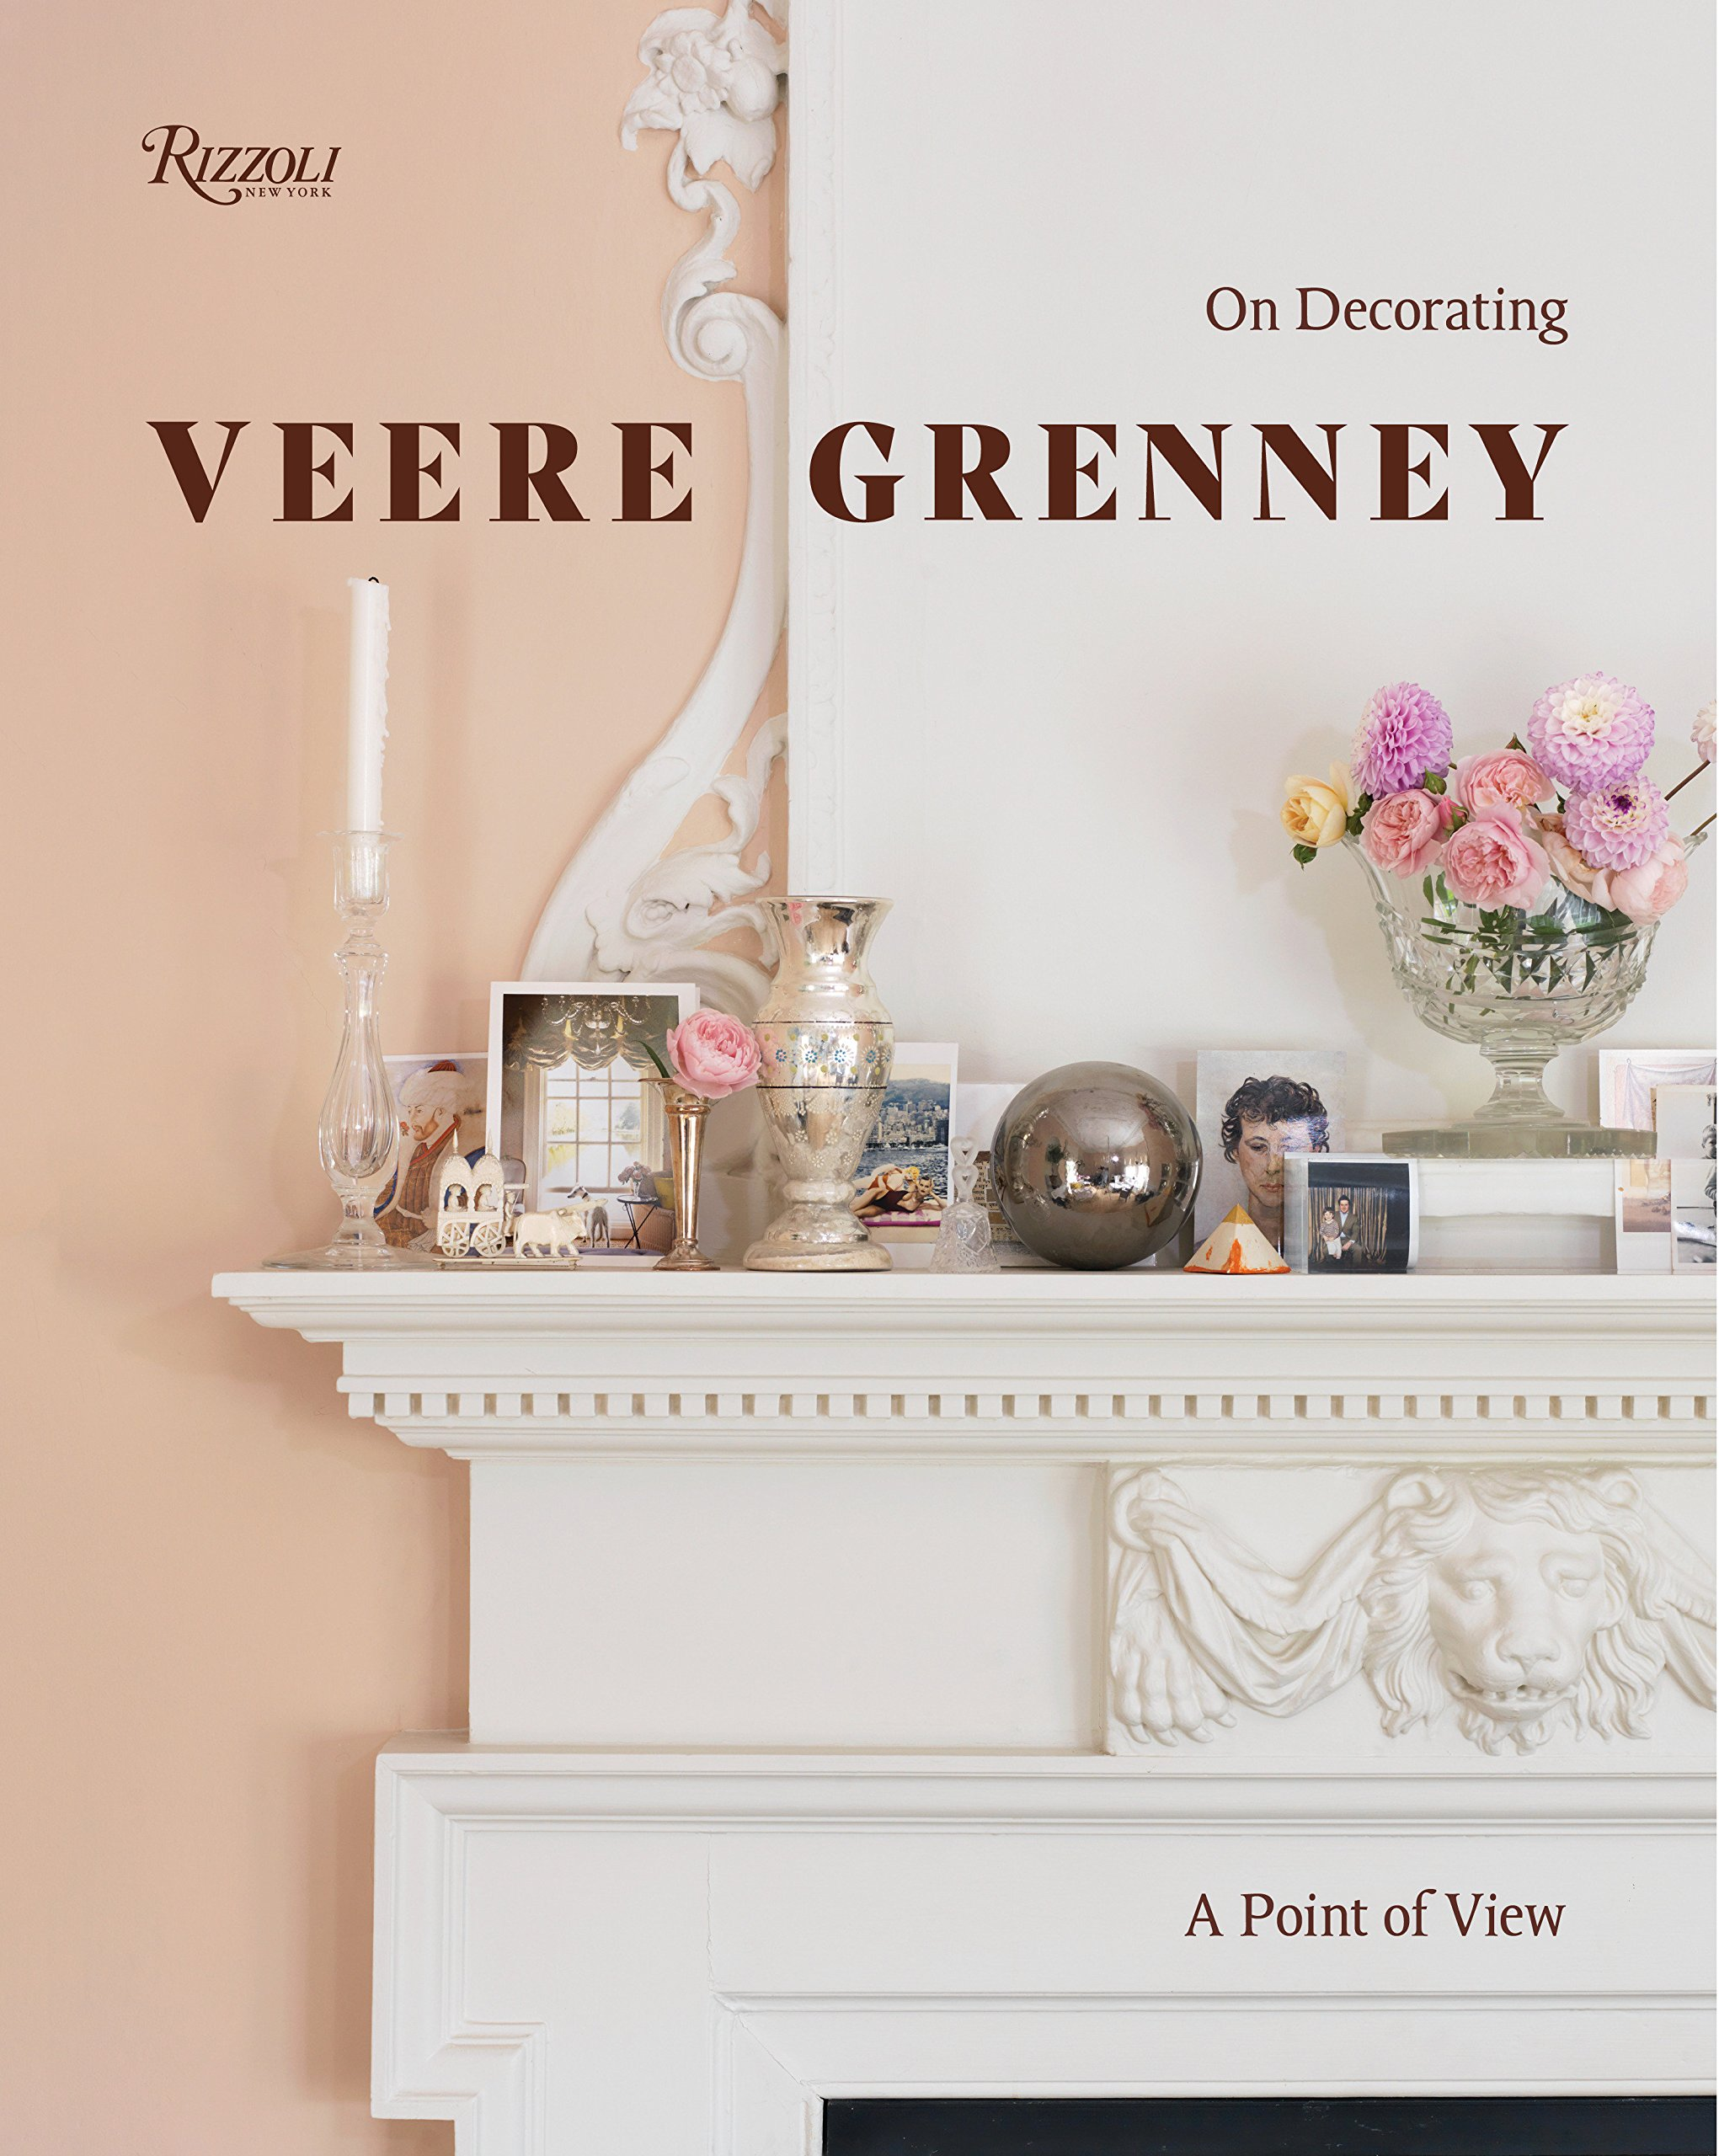 Veere Grenney: A Point of View: On Decorating by Rizzoli